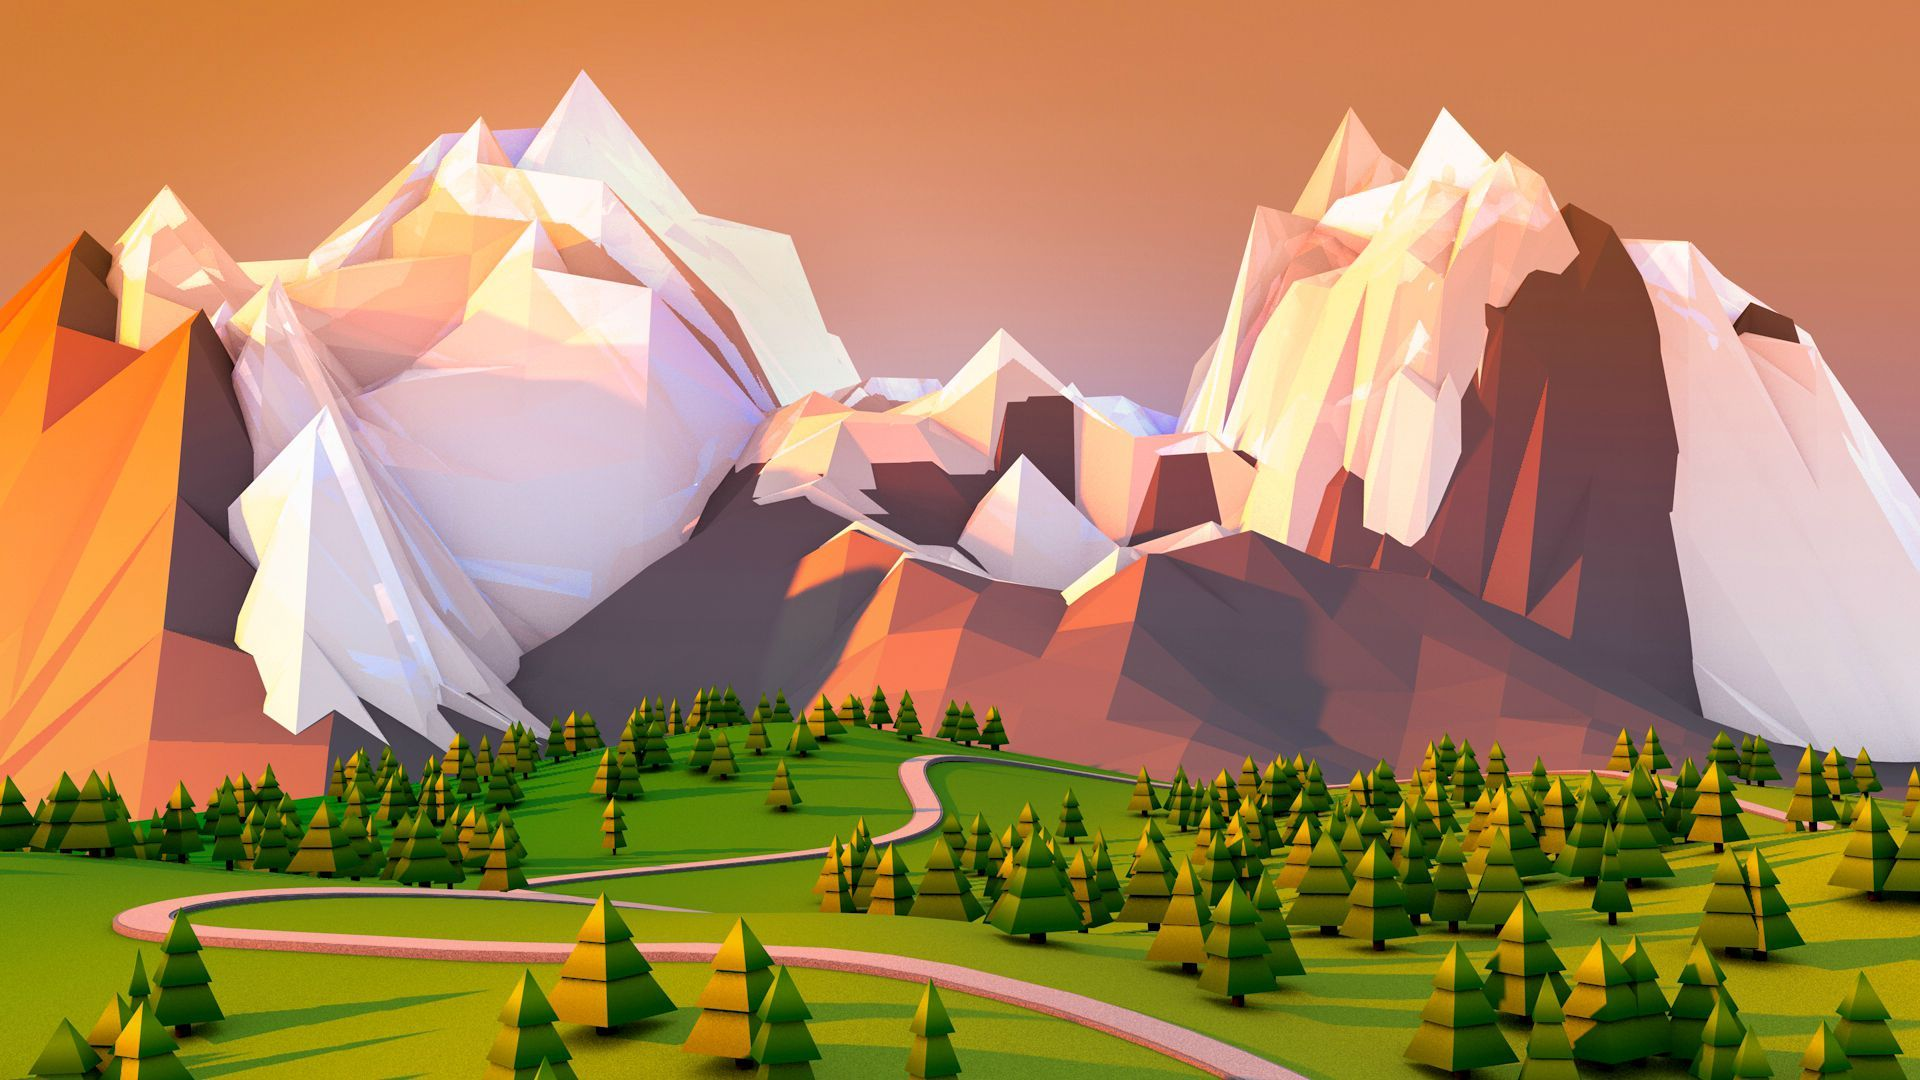 Low Poly Forest With Mountain Background Polygon Art Low Poly Art Art Wallpaper